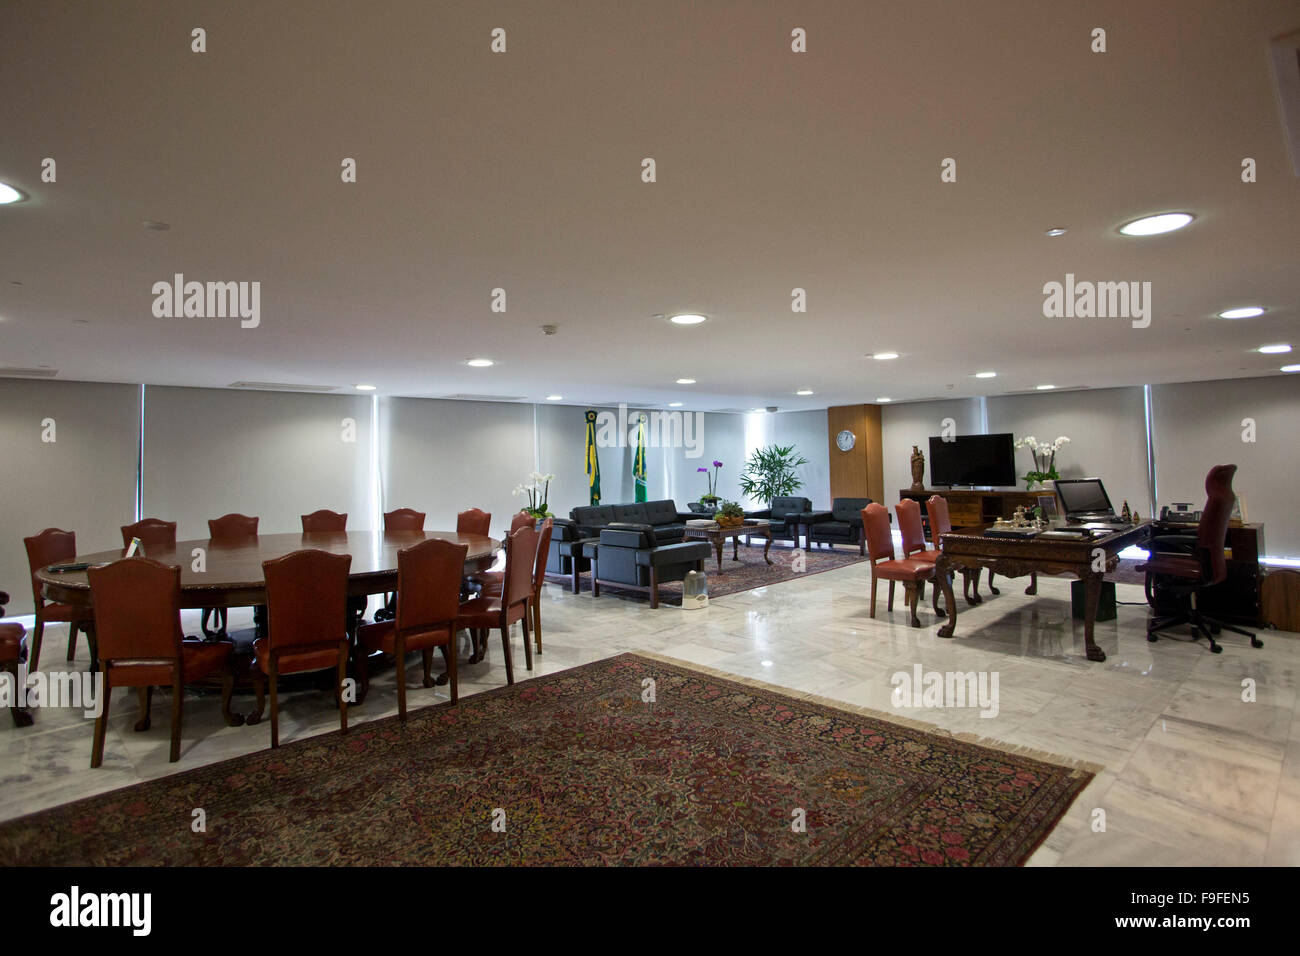 Brasilia, Presidential palace, office of Dilma Rousseff - Stock Image